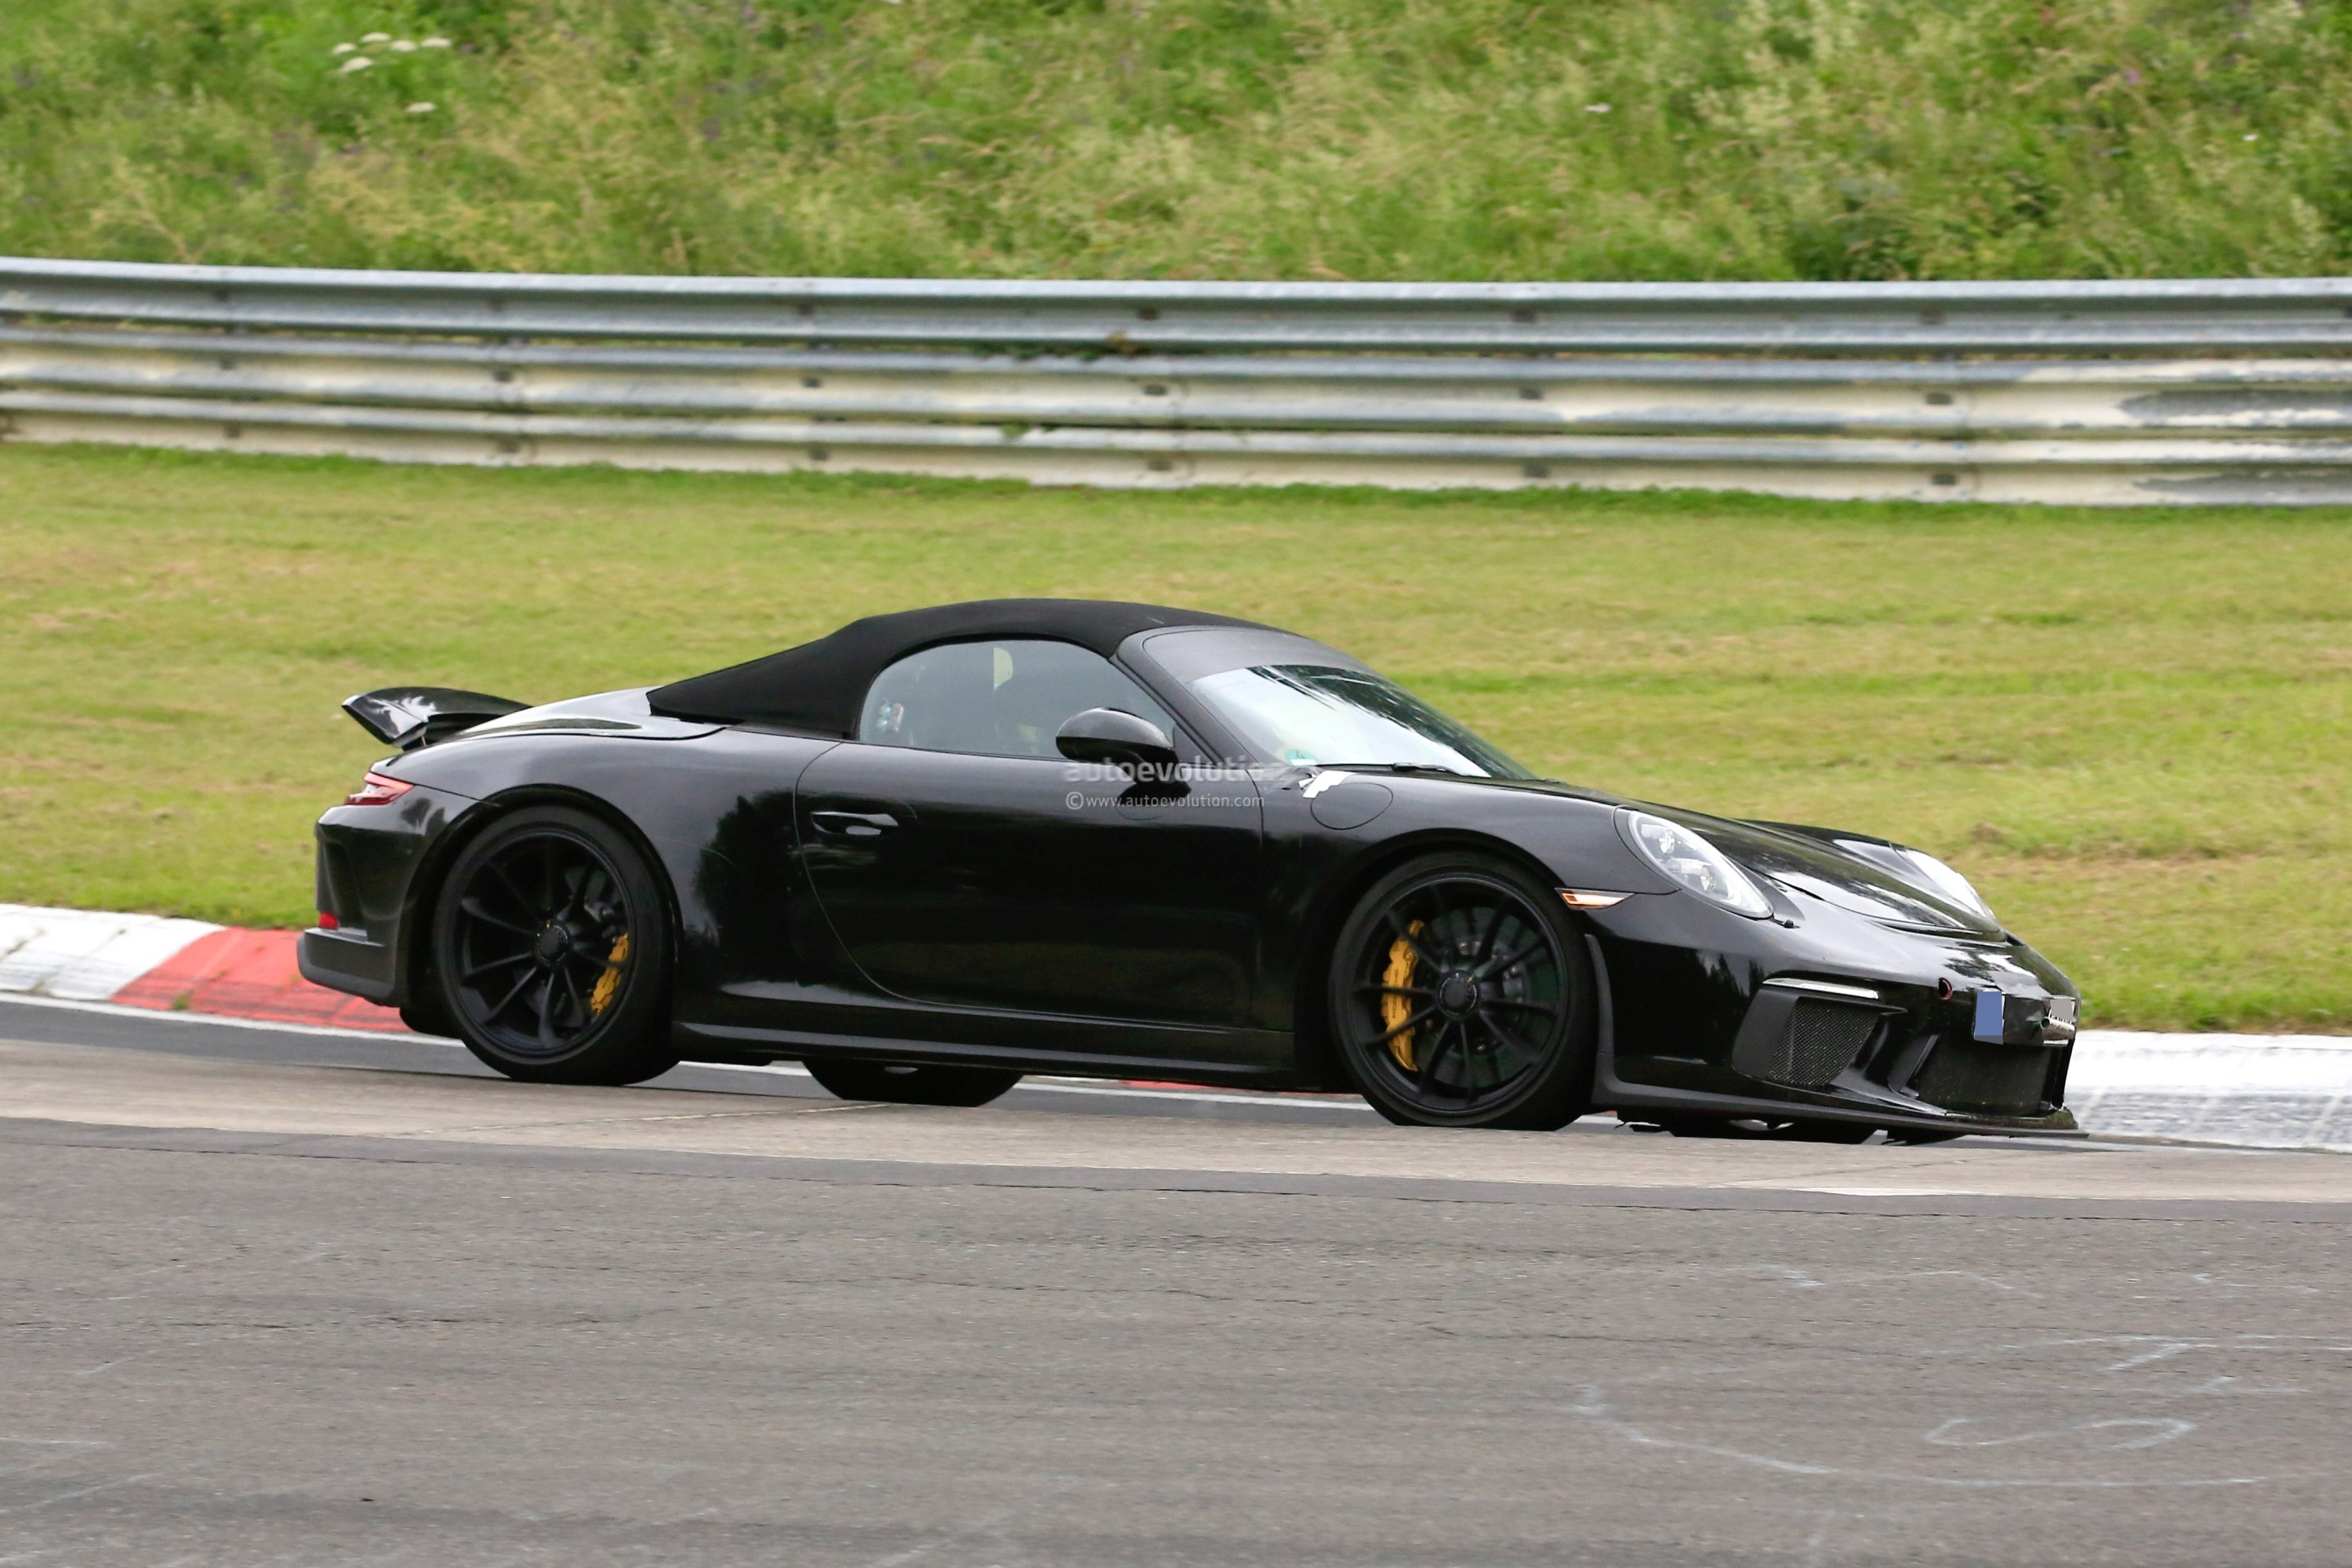 2019 porsche 911 speedster shows up at nurburgring looks like a jewel autoevolution. Black Bedroom Furniture Sets. Home Design Ideas